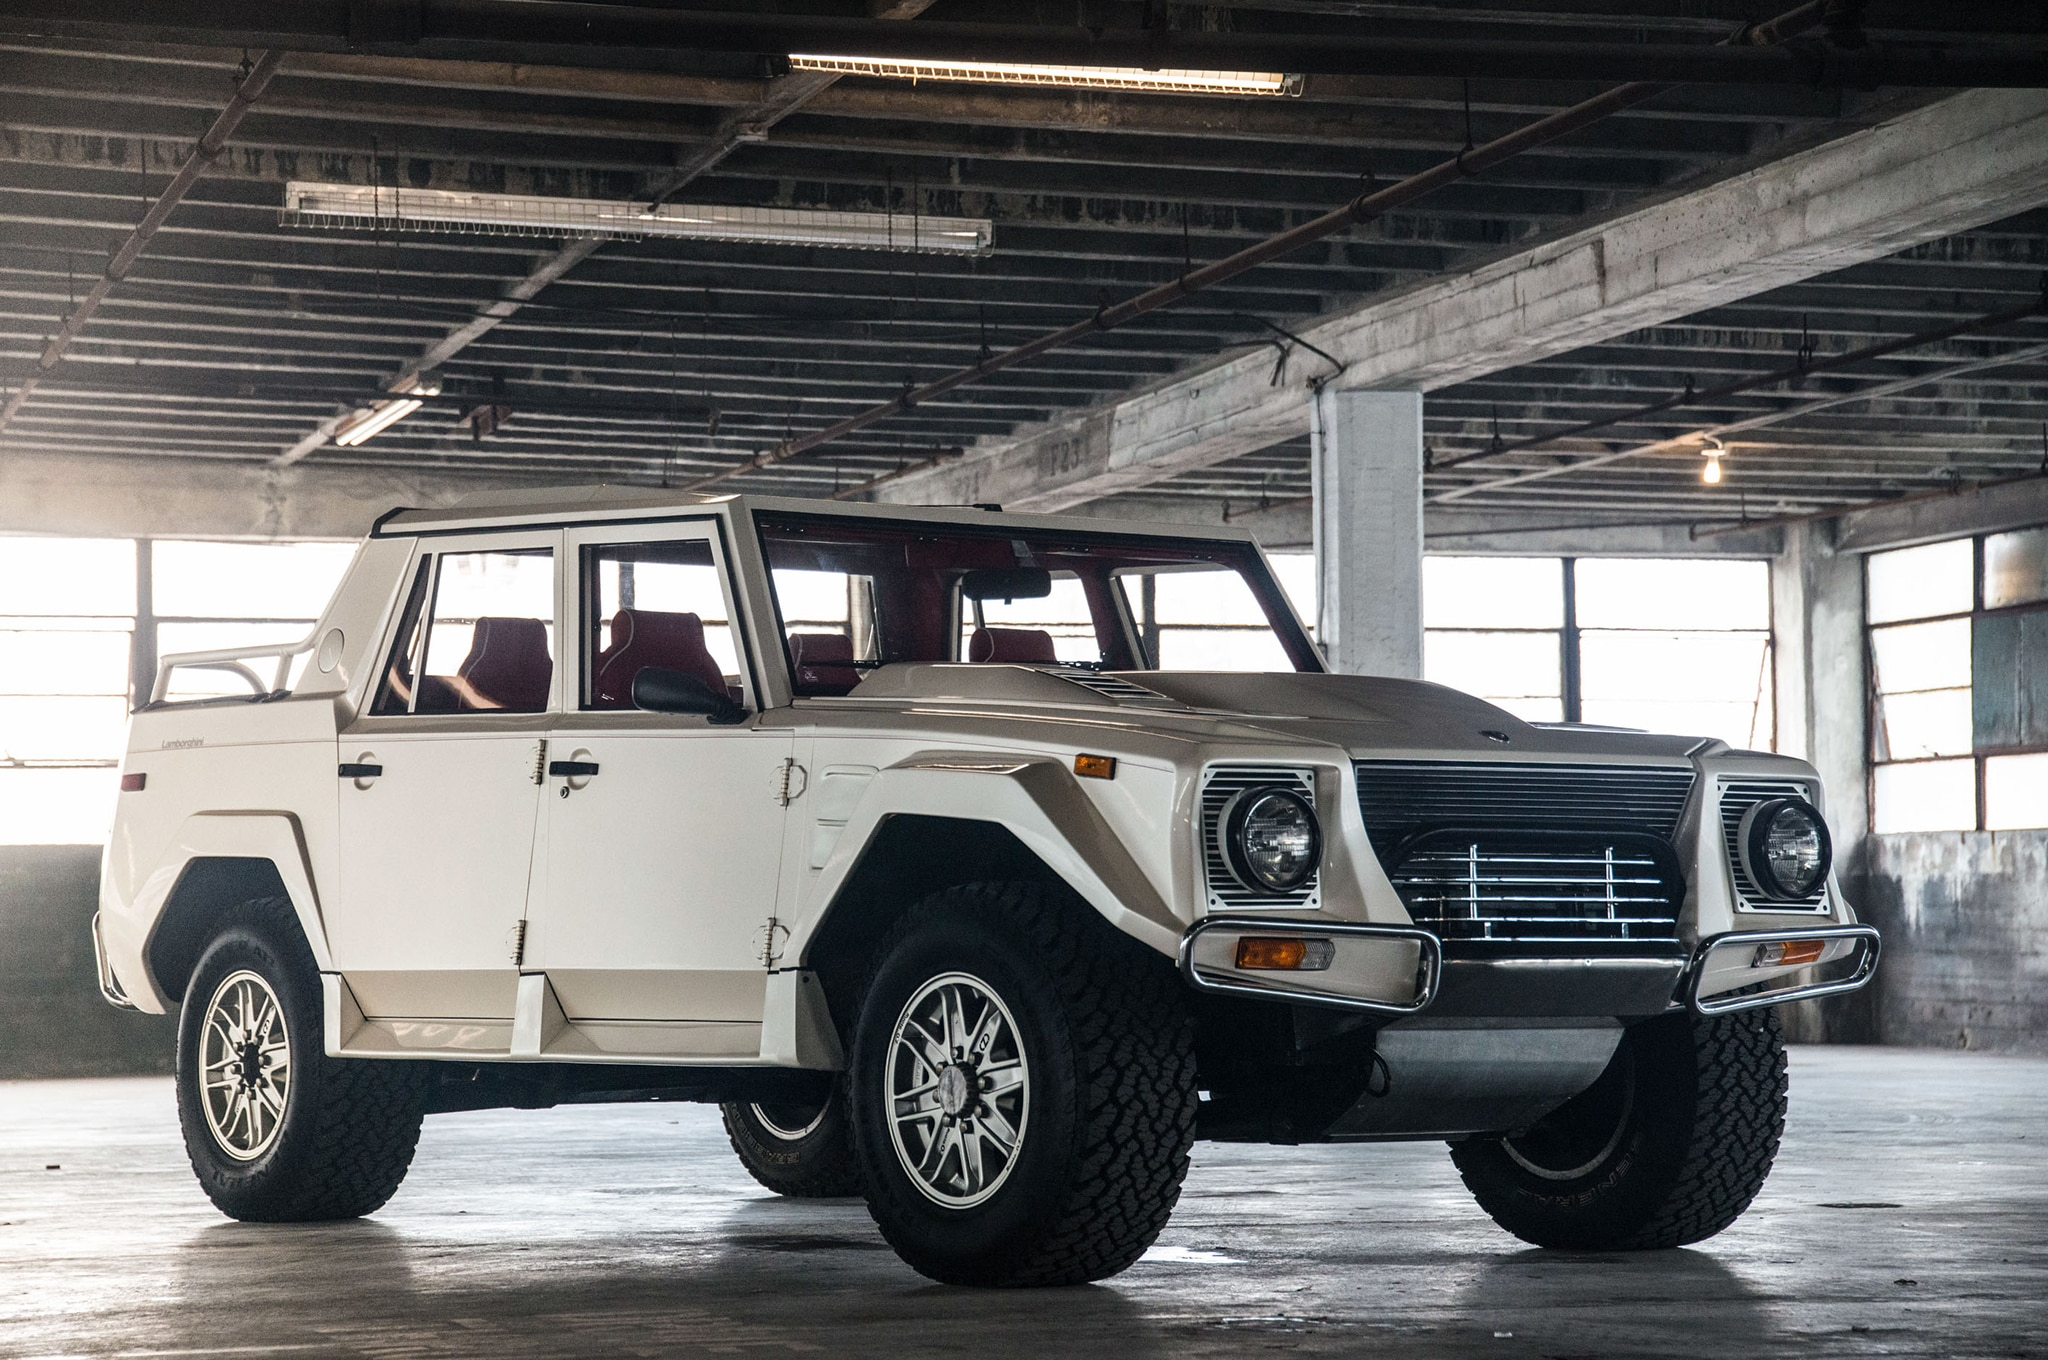 Just Listed: 1990 Lamborghini LM002 with Just 3,300 Miles ...